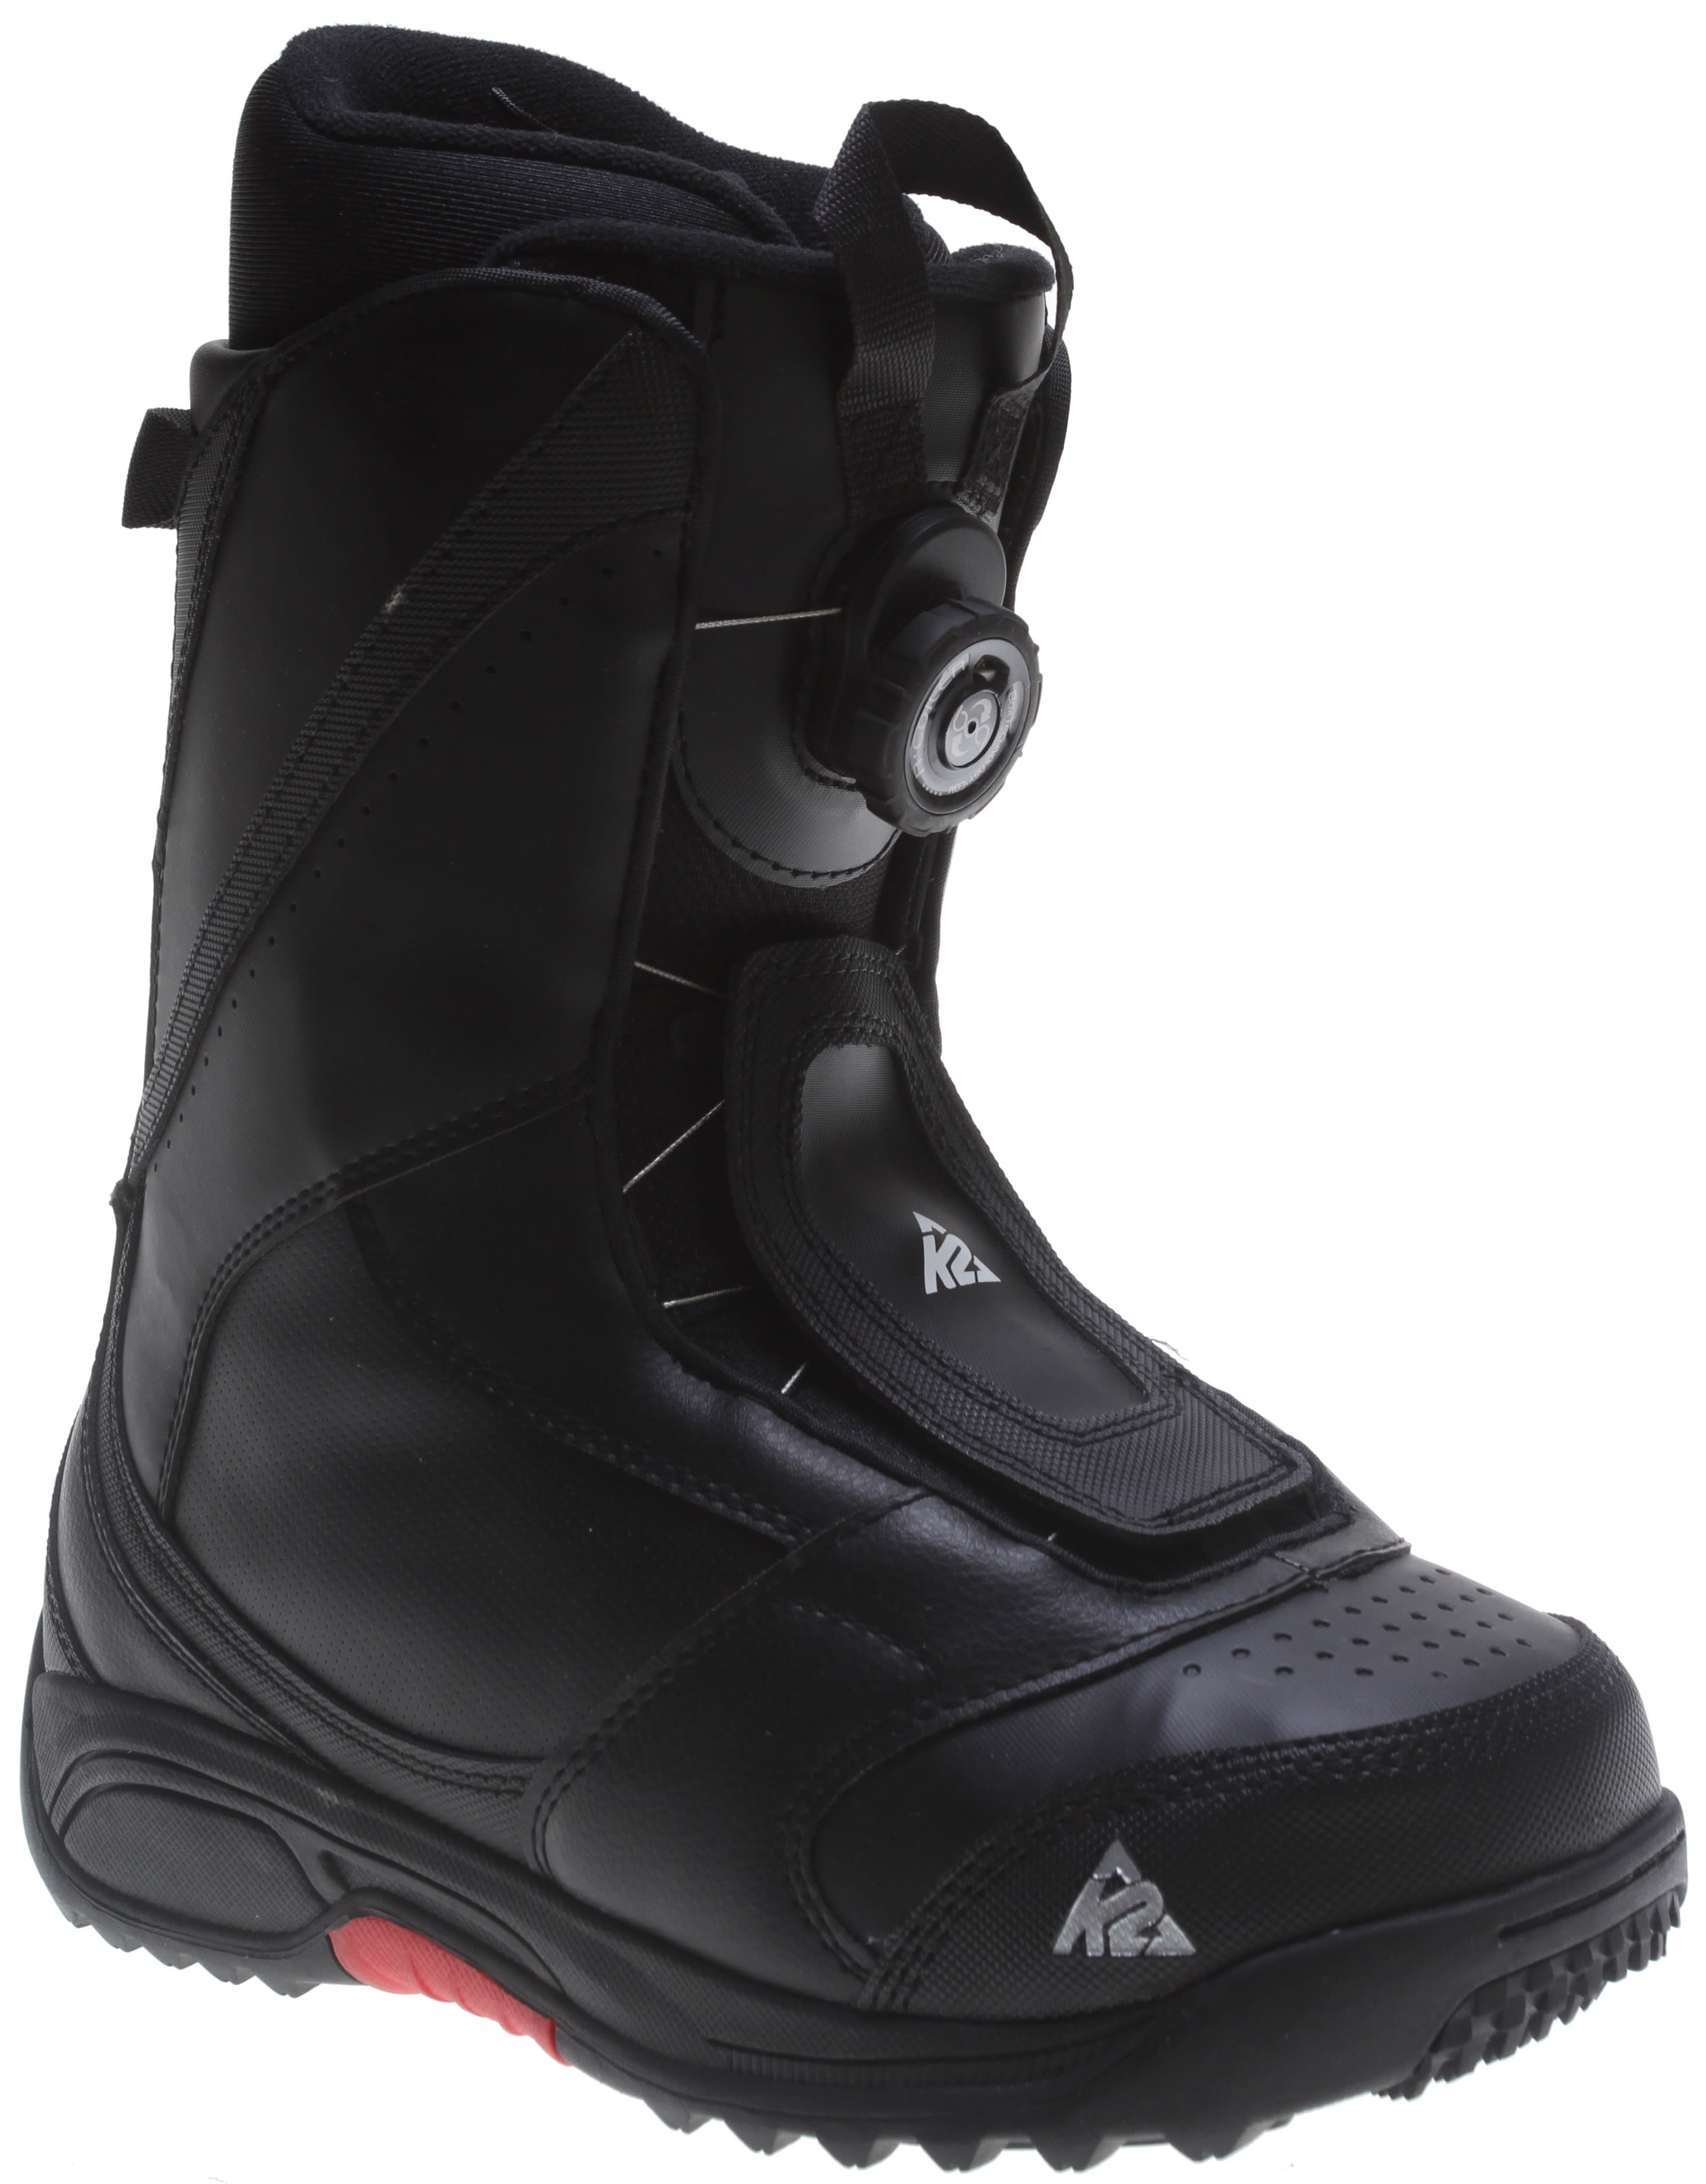 k2 raider boa snowboard boots. Black Bedroom Furniture Sets. Home Design Ideas